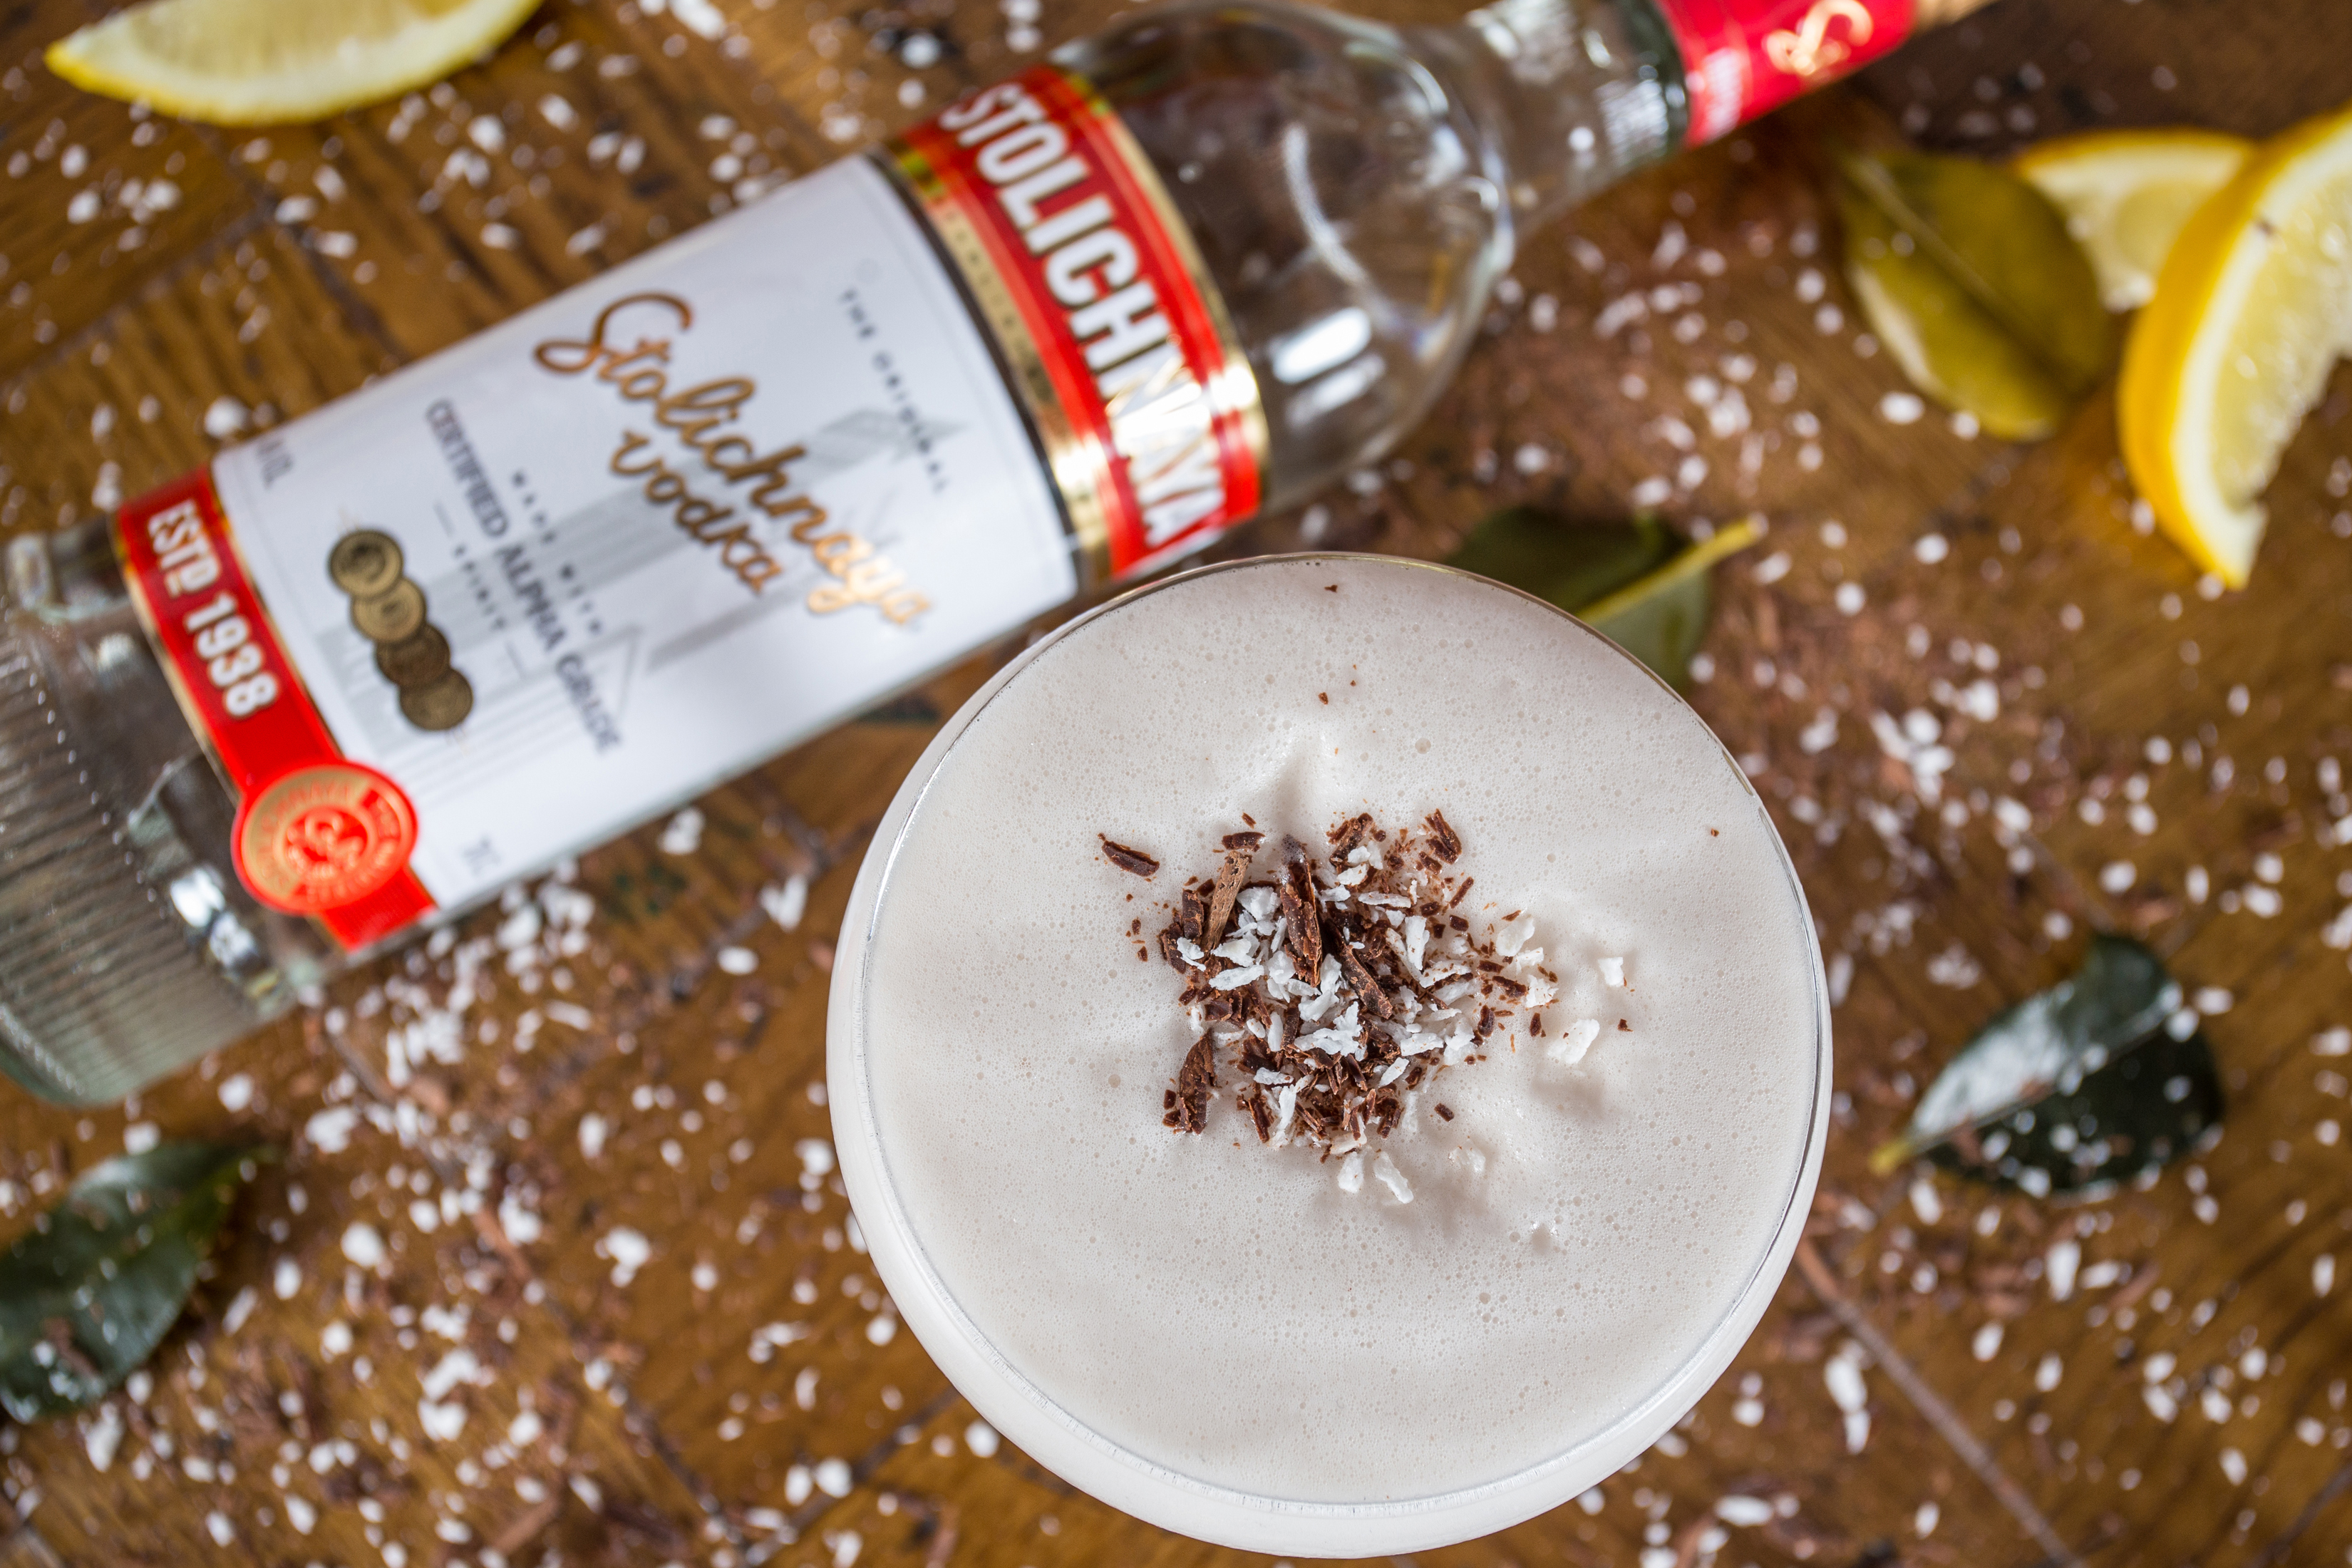 Cocktail photo with stoli vodka, chocolate and coconut shavings